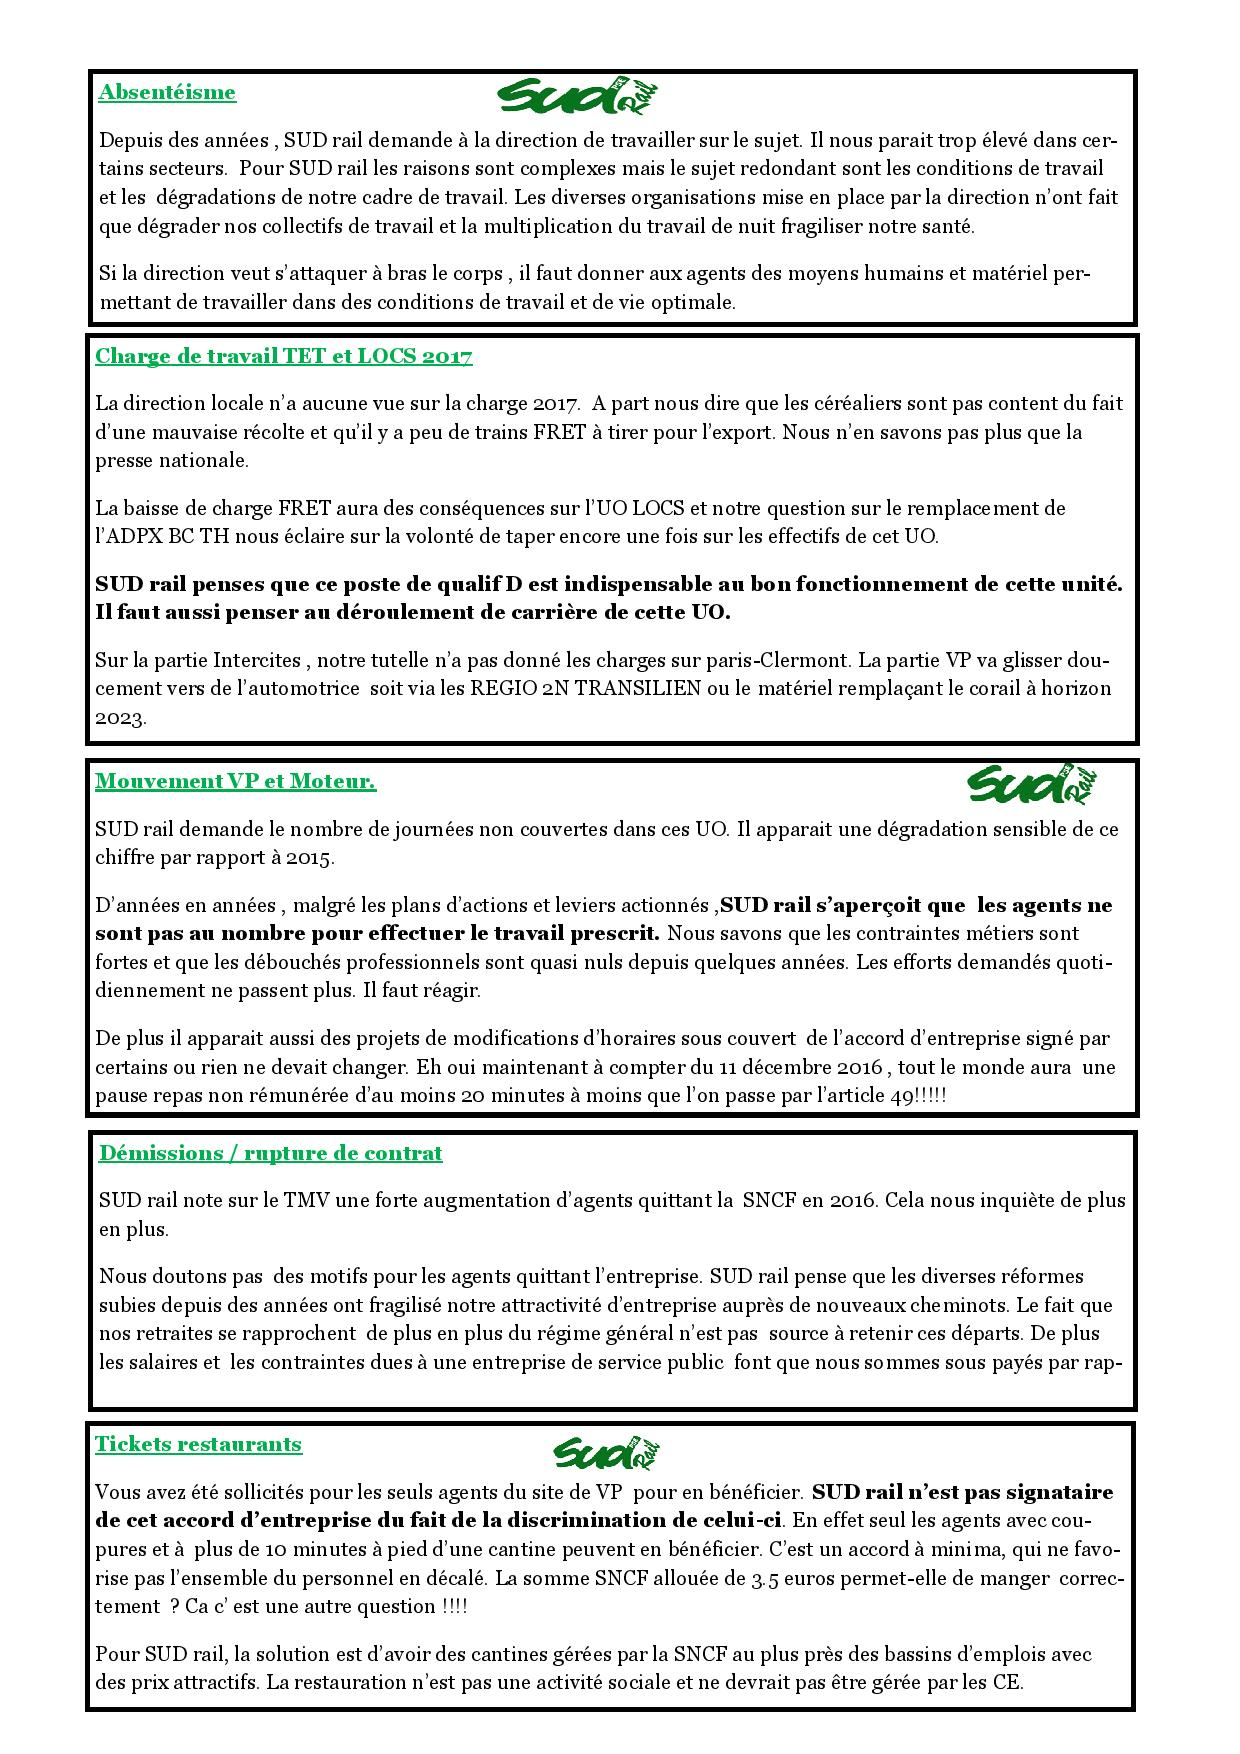 tmv-crdp-12-2016-page-002